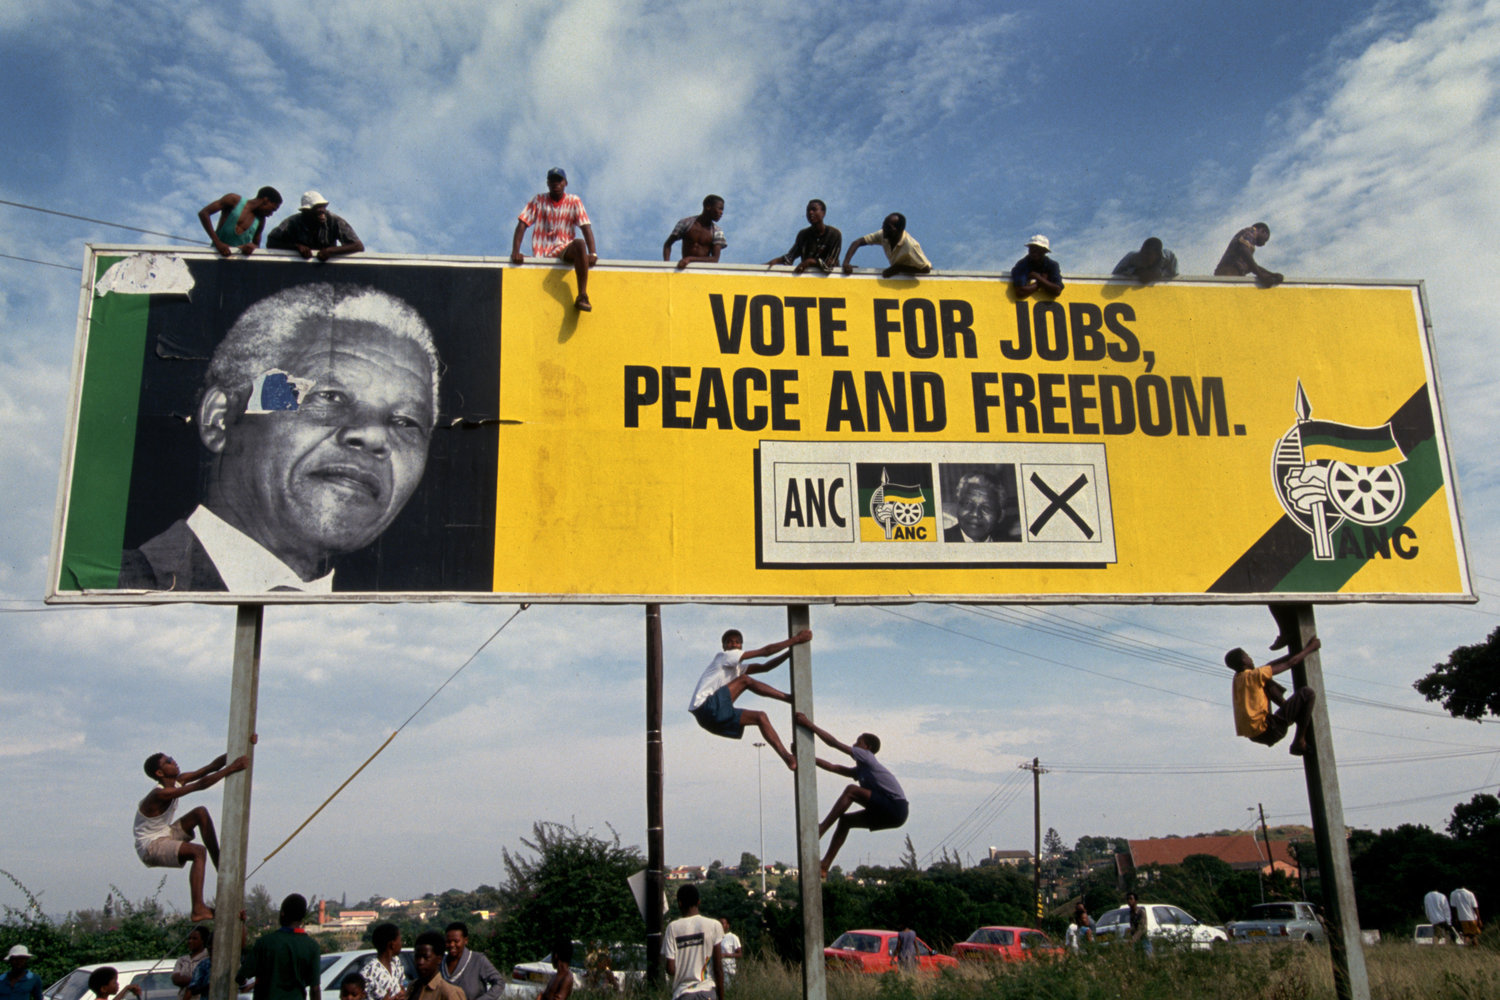 """First free elections. South Africa, 1994.<span class=""""photo-essays-link""""><span class=""""separator"""">・</span><a href=""""/photo-essays"""">Photo-essays</a></span>"""